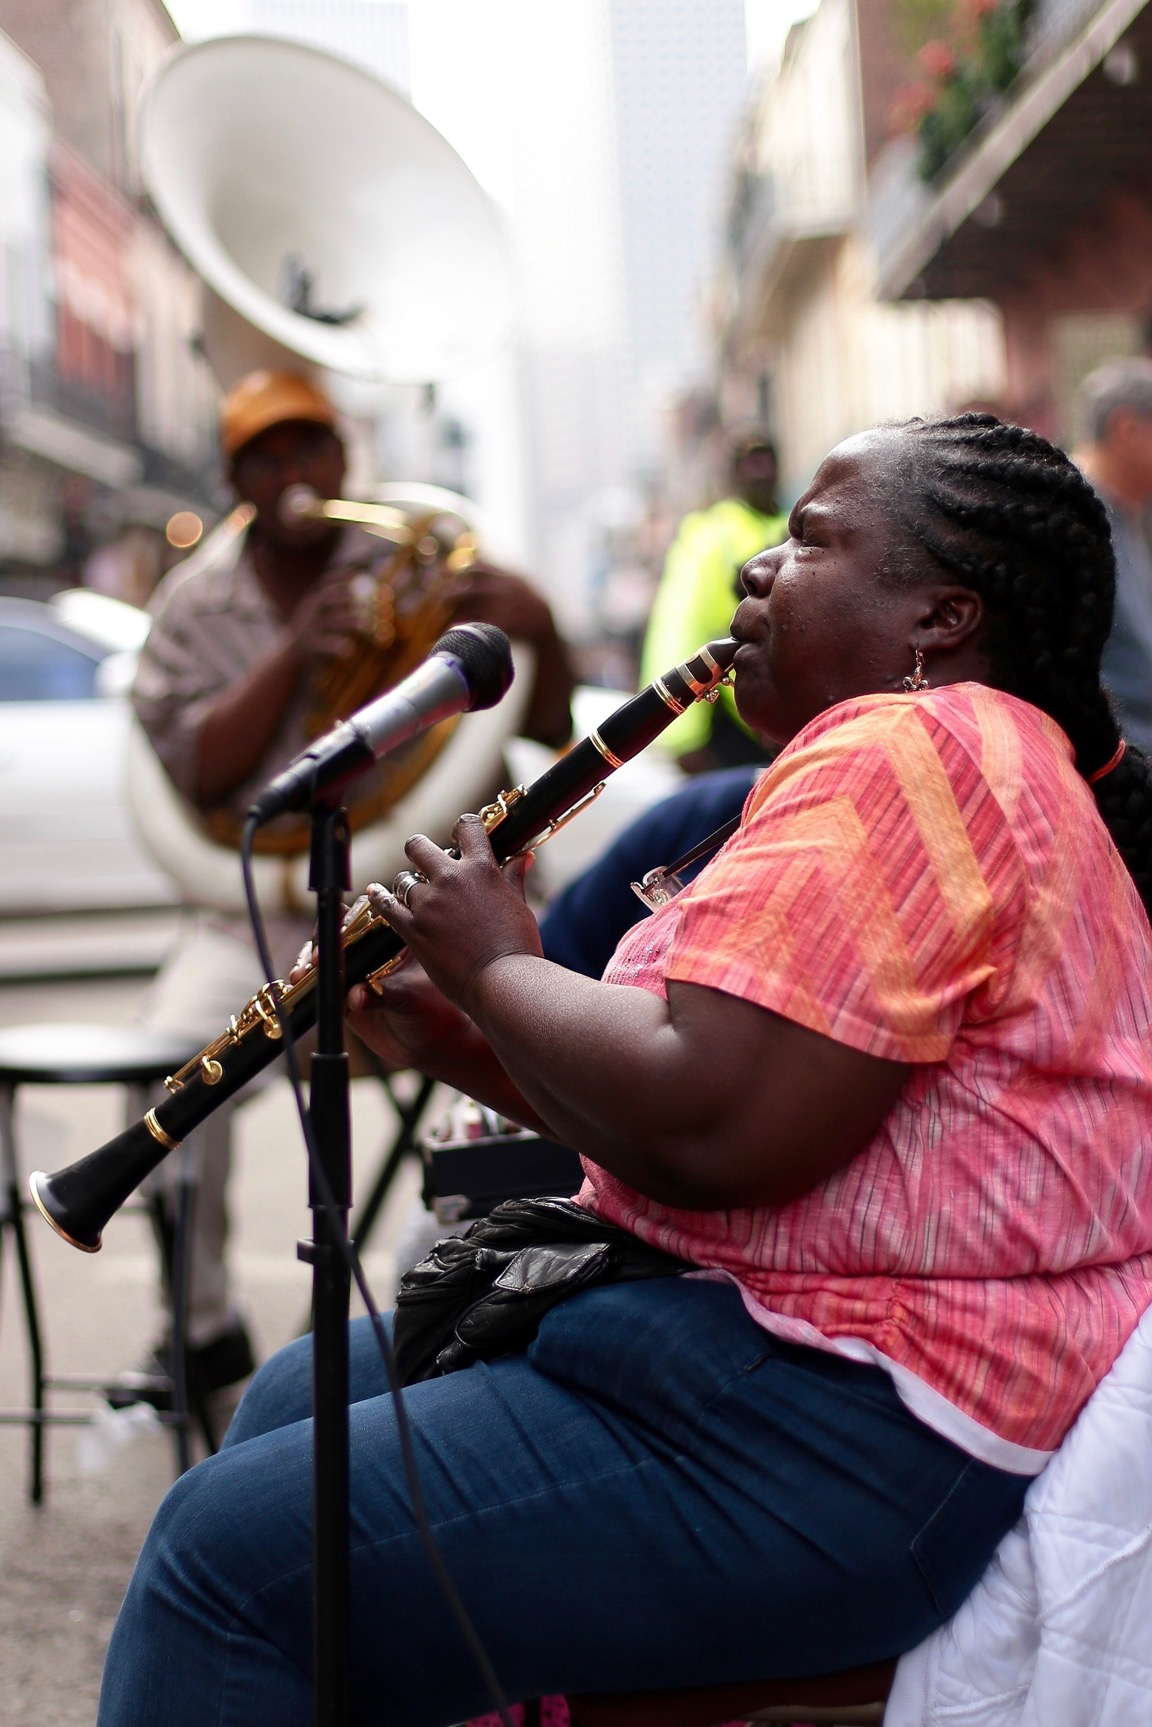 Jazz lives on the streets of New Orleans (Photo: Nathan Bingle)